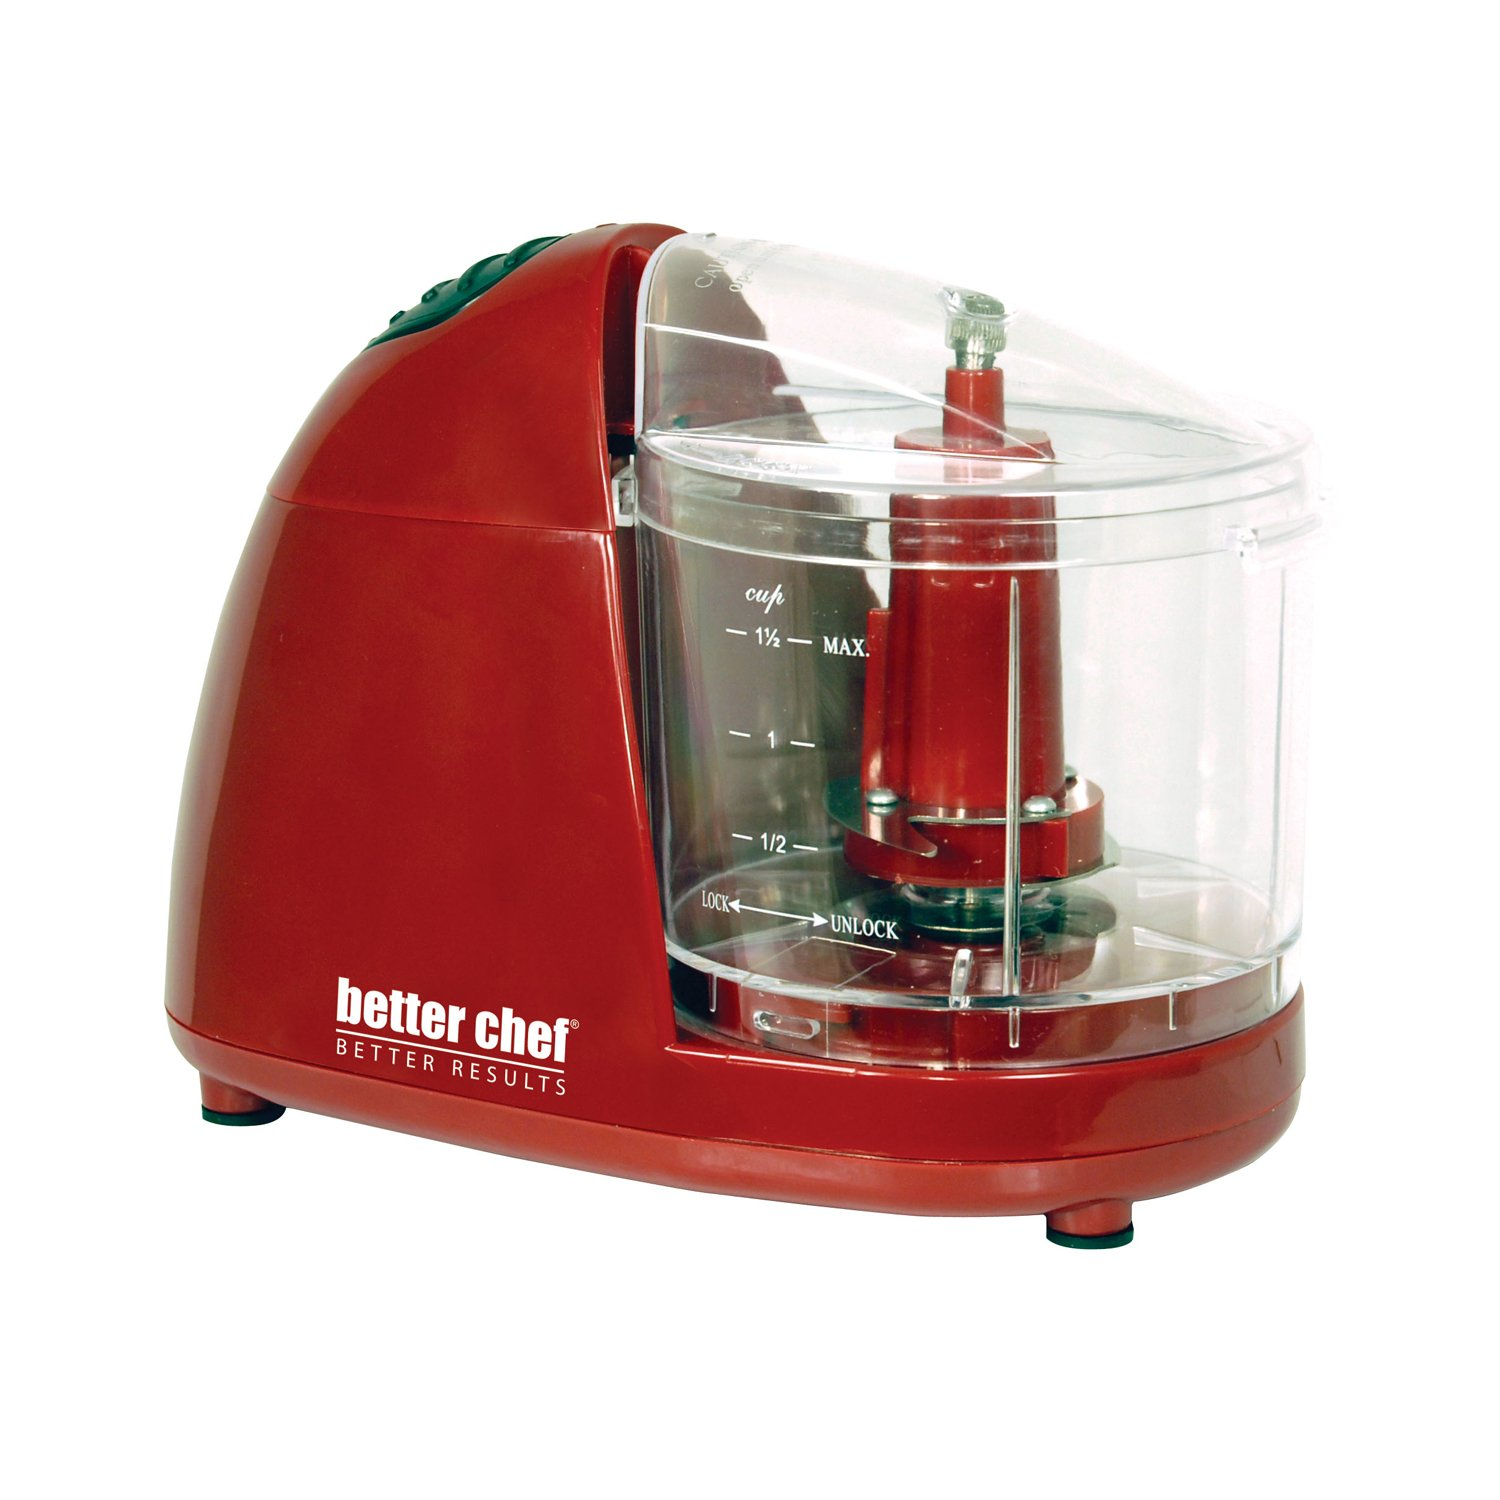 Better Chef Compact Chopper - Red